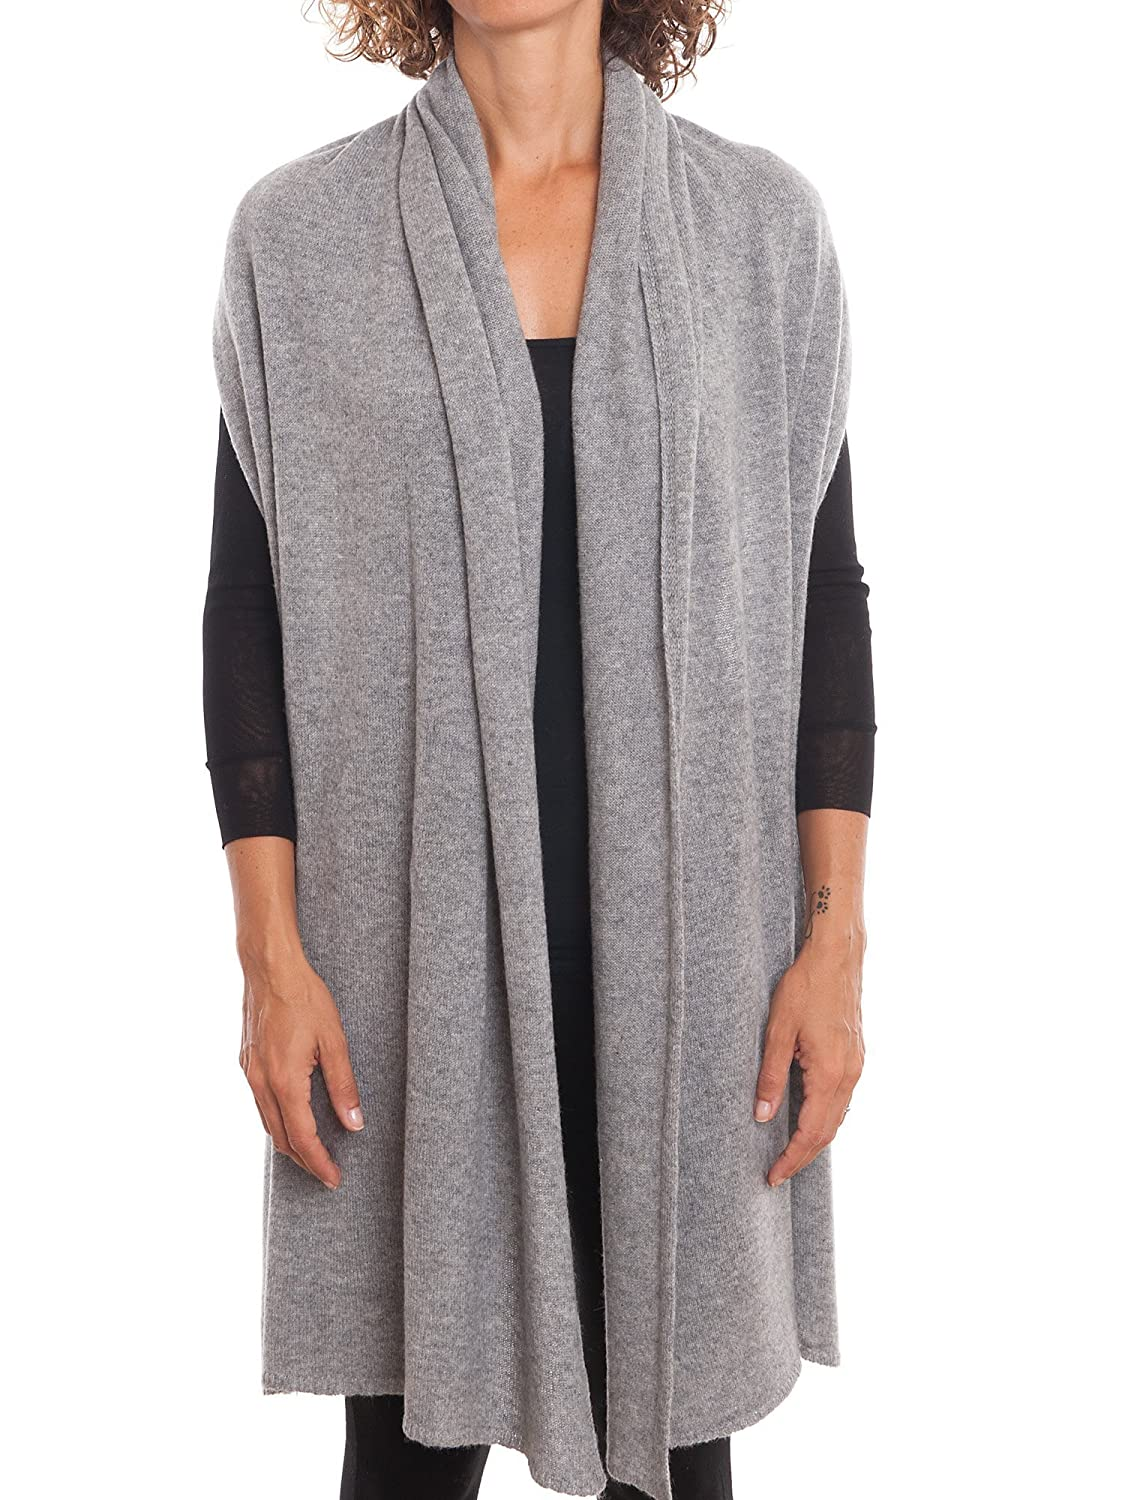 Stole 100/% cashmere Woman One size Color: Lilac Made in Italy Dalle Piane Cashmere